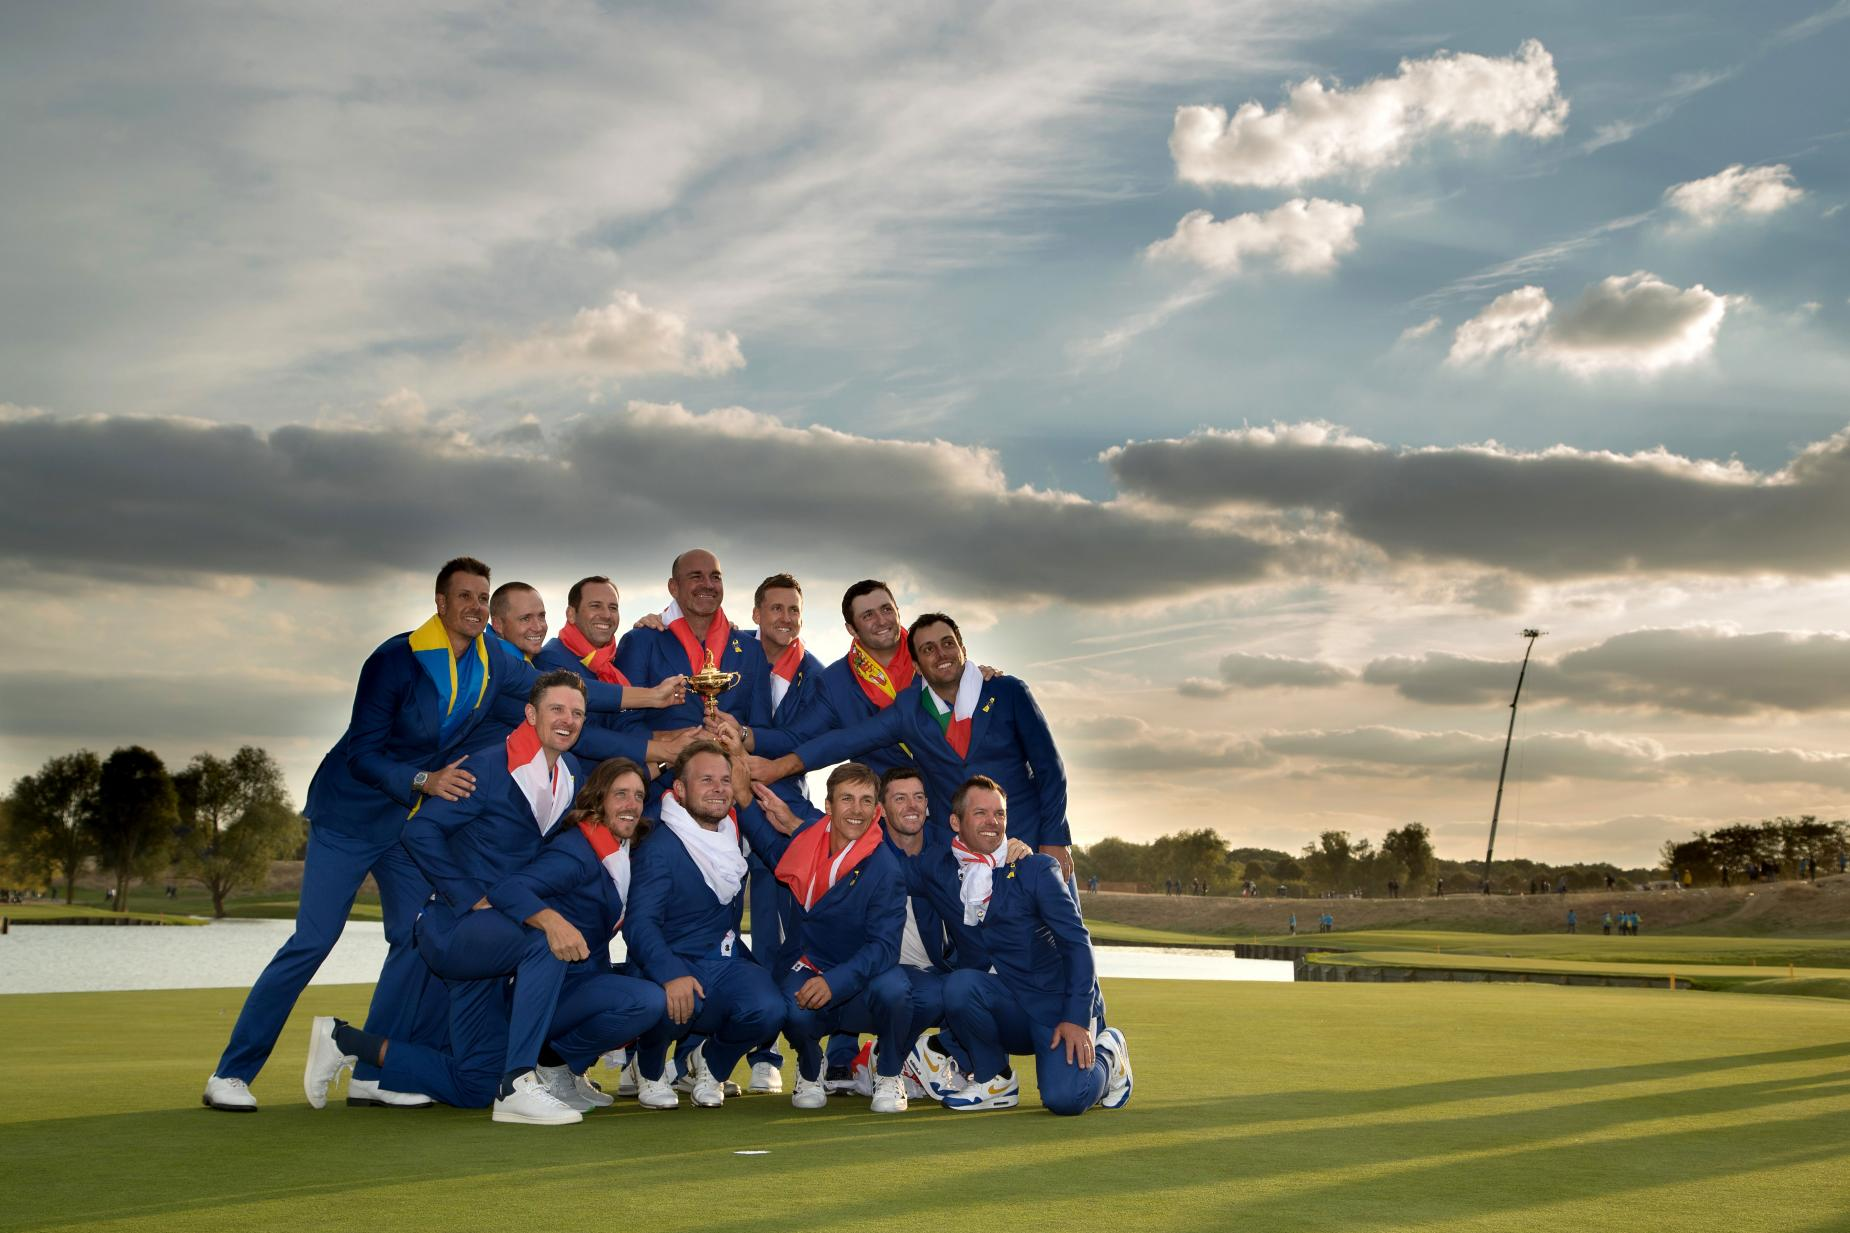 europe-ryder-cup-team-2018-sunday-trophy.jpg